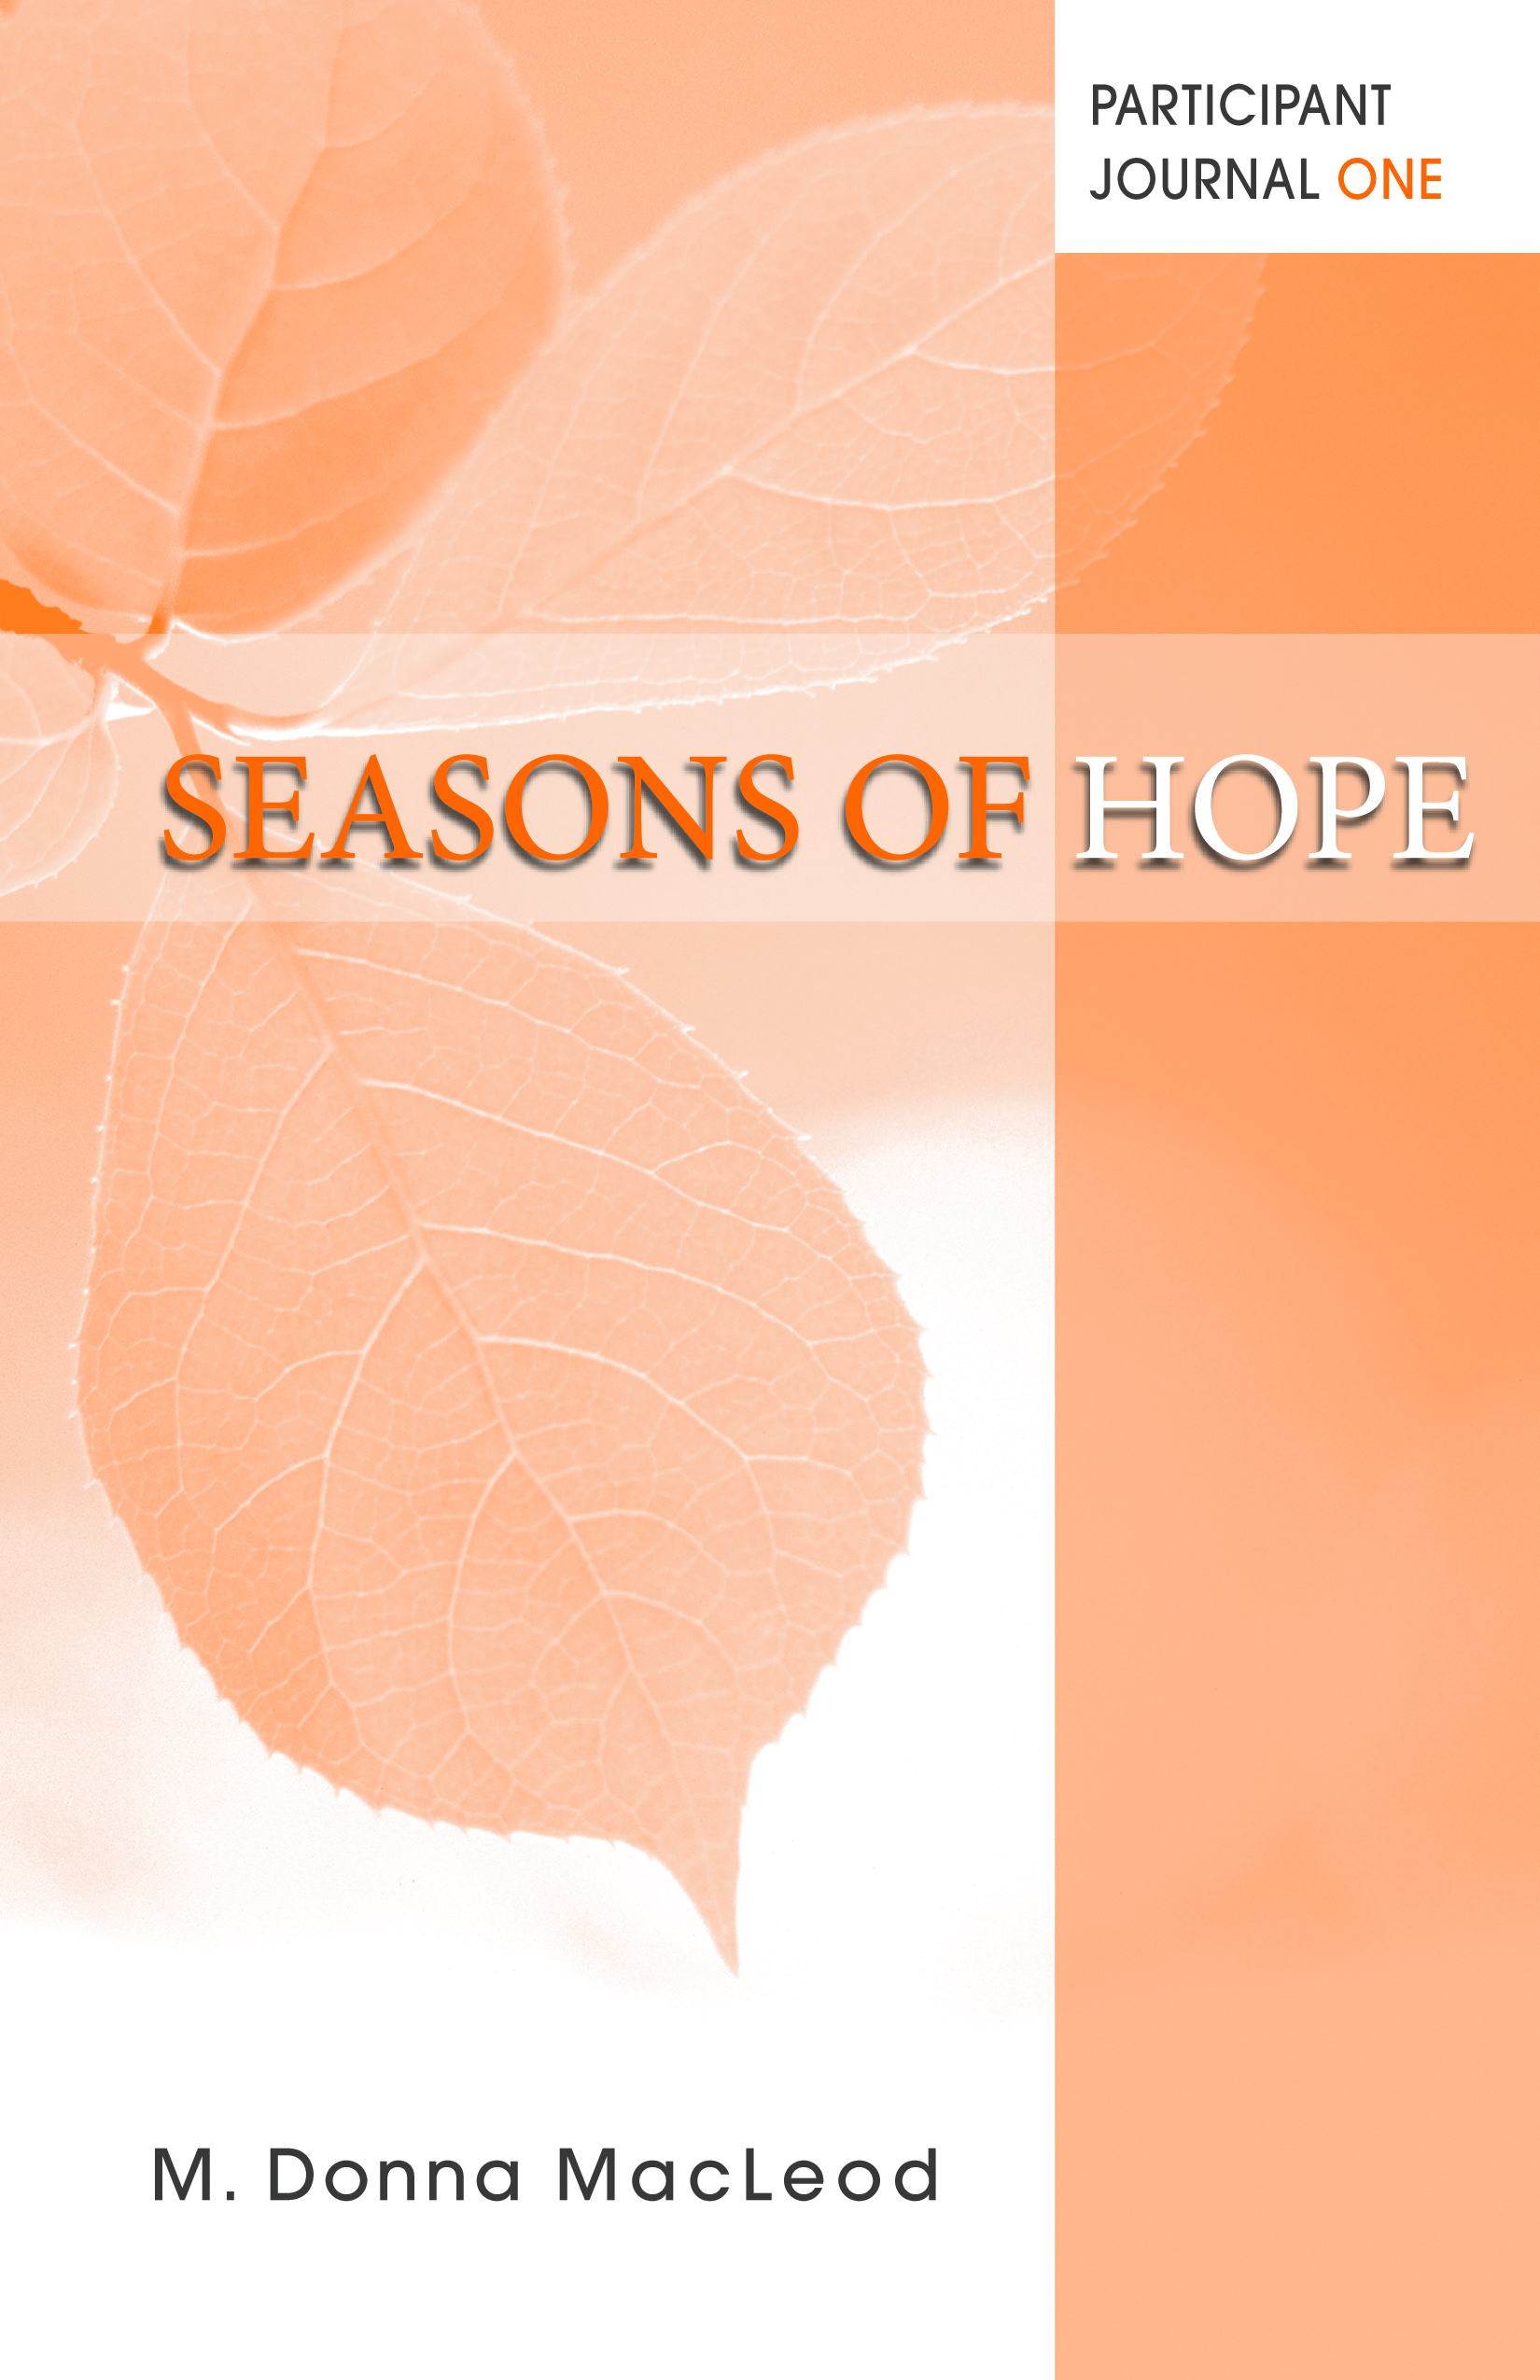 Seasons of Hope Participant Journal 1